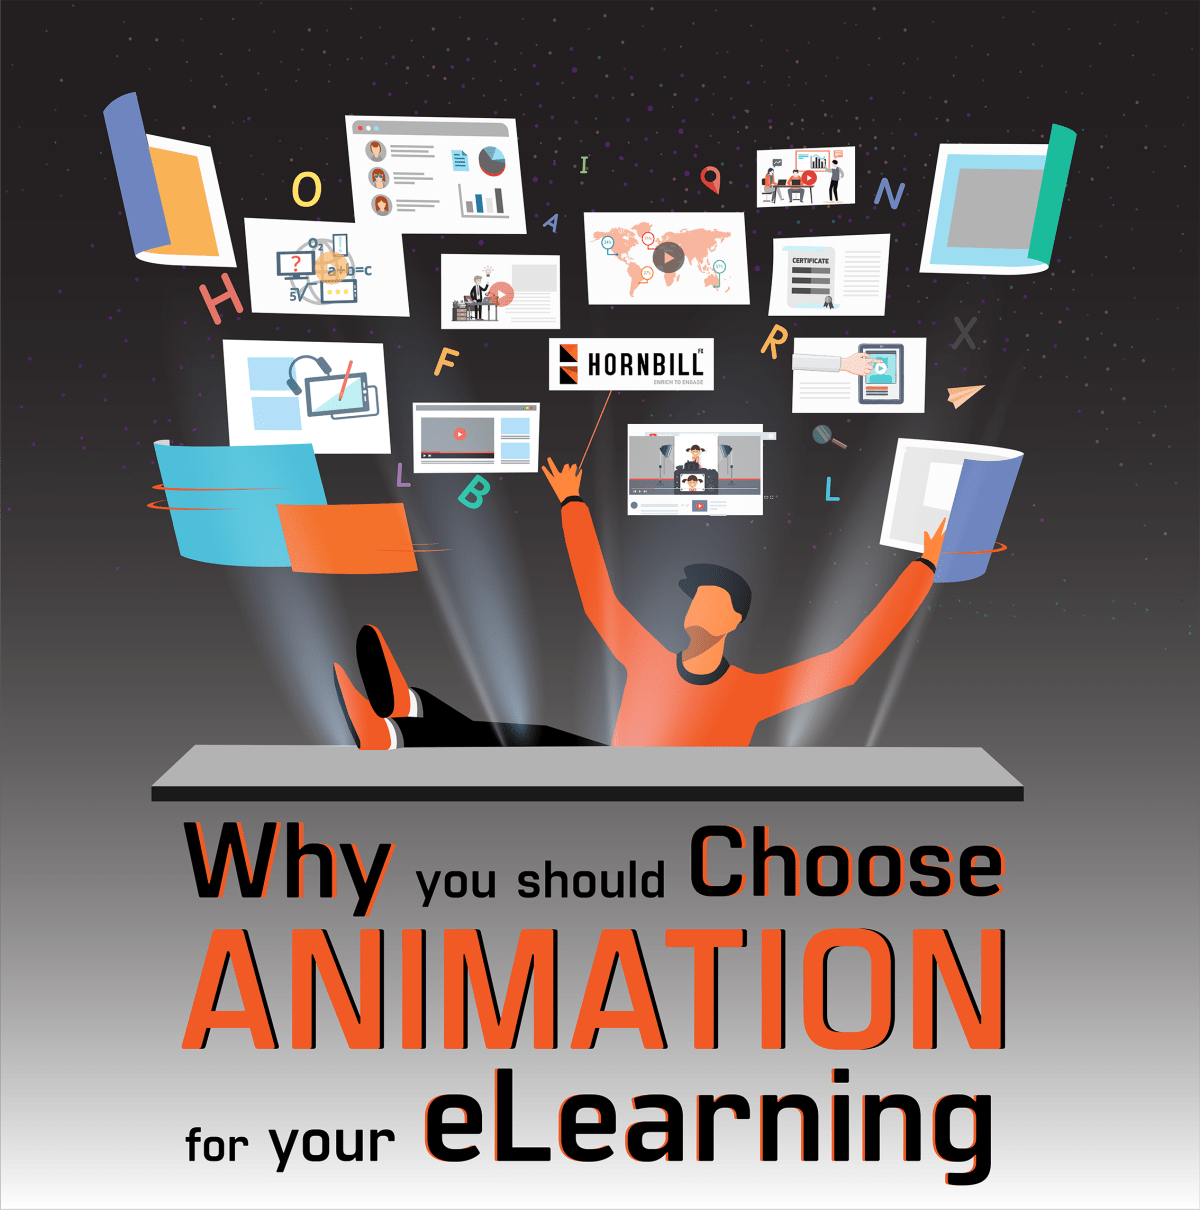 Animation in eLearning